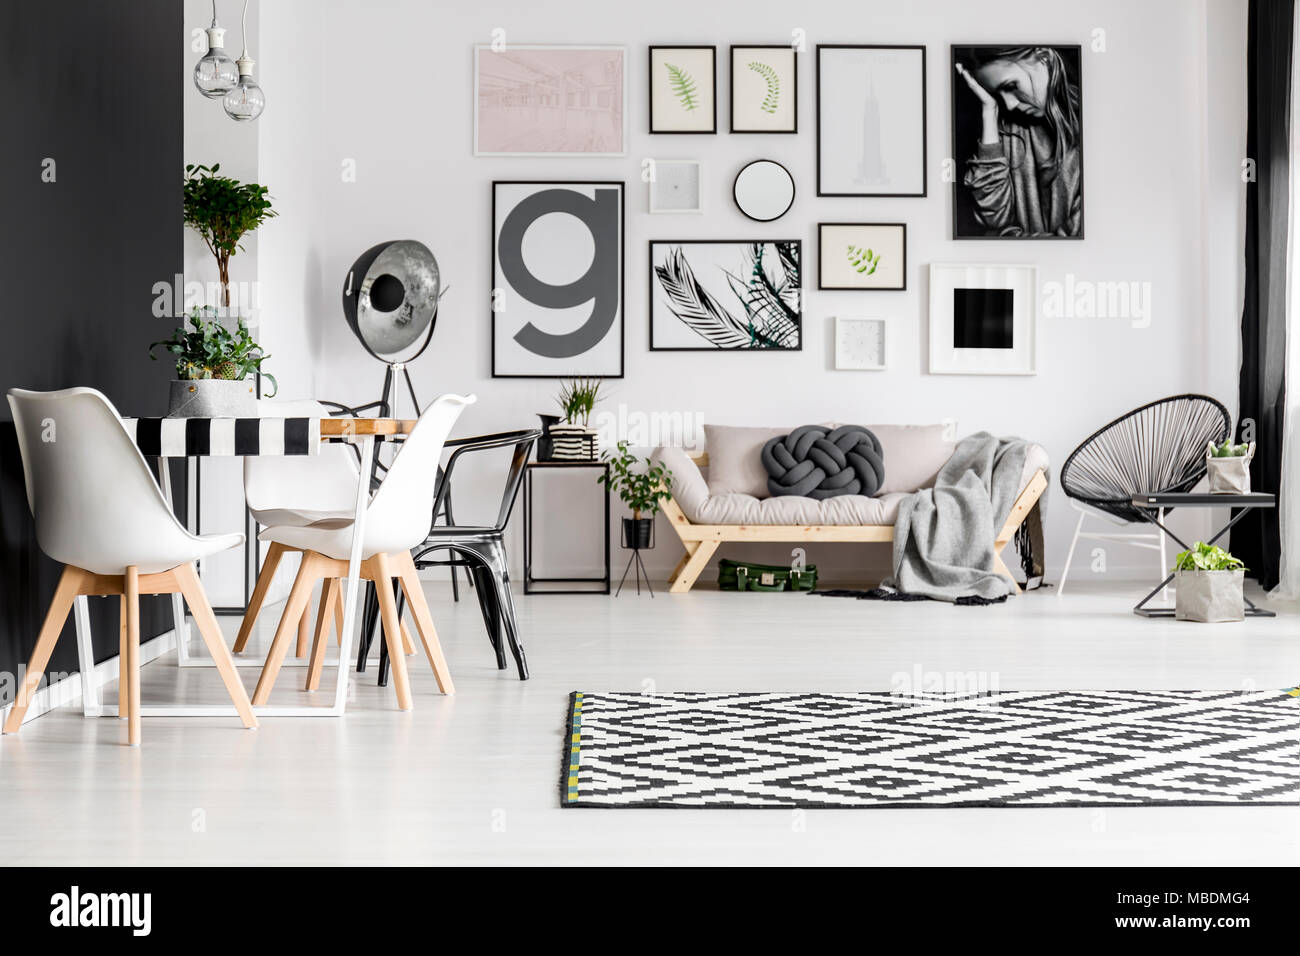 Art Gallery Dining Table With Chairs And Sofa With Blanket And Knot Pillow In A White Living Room Interior Stock Photo Alamy